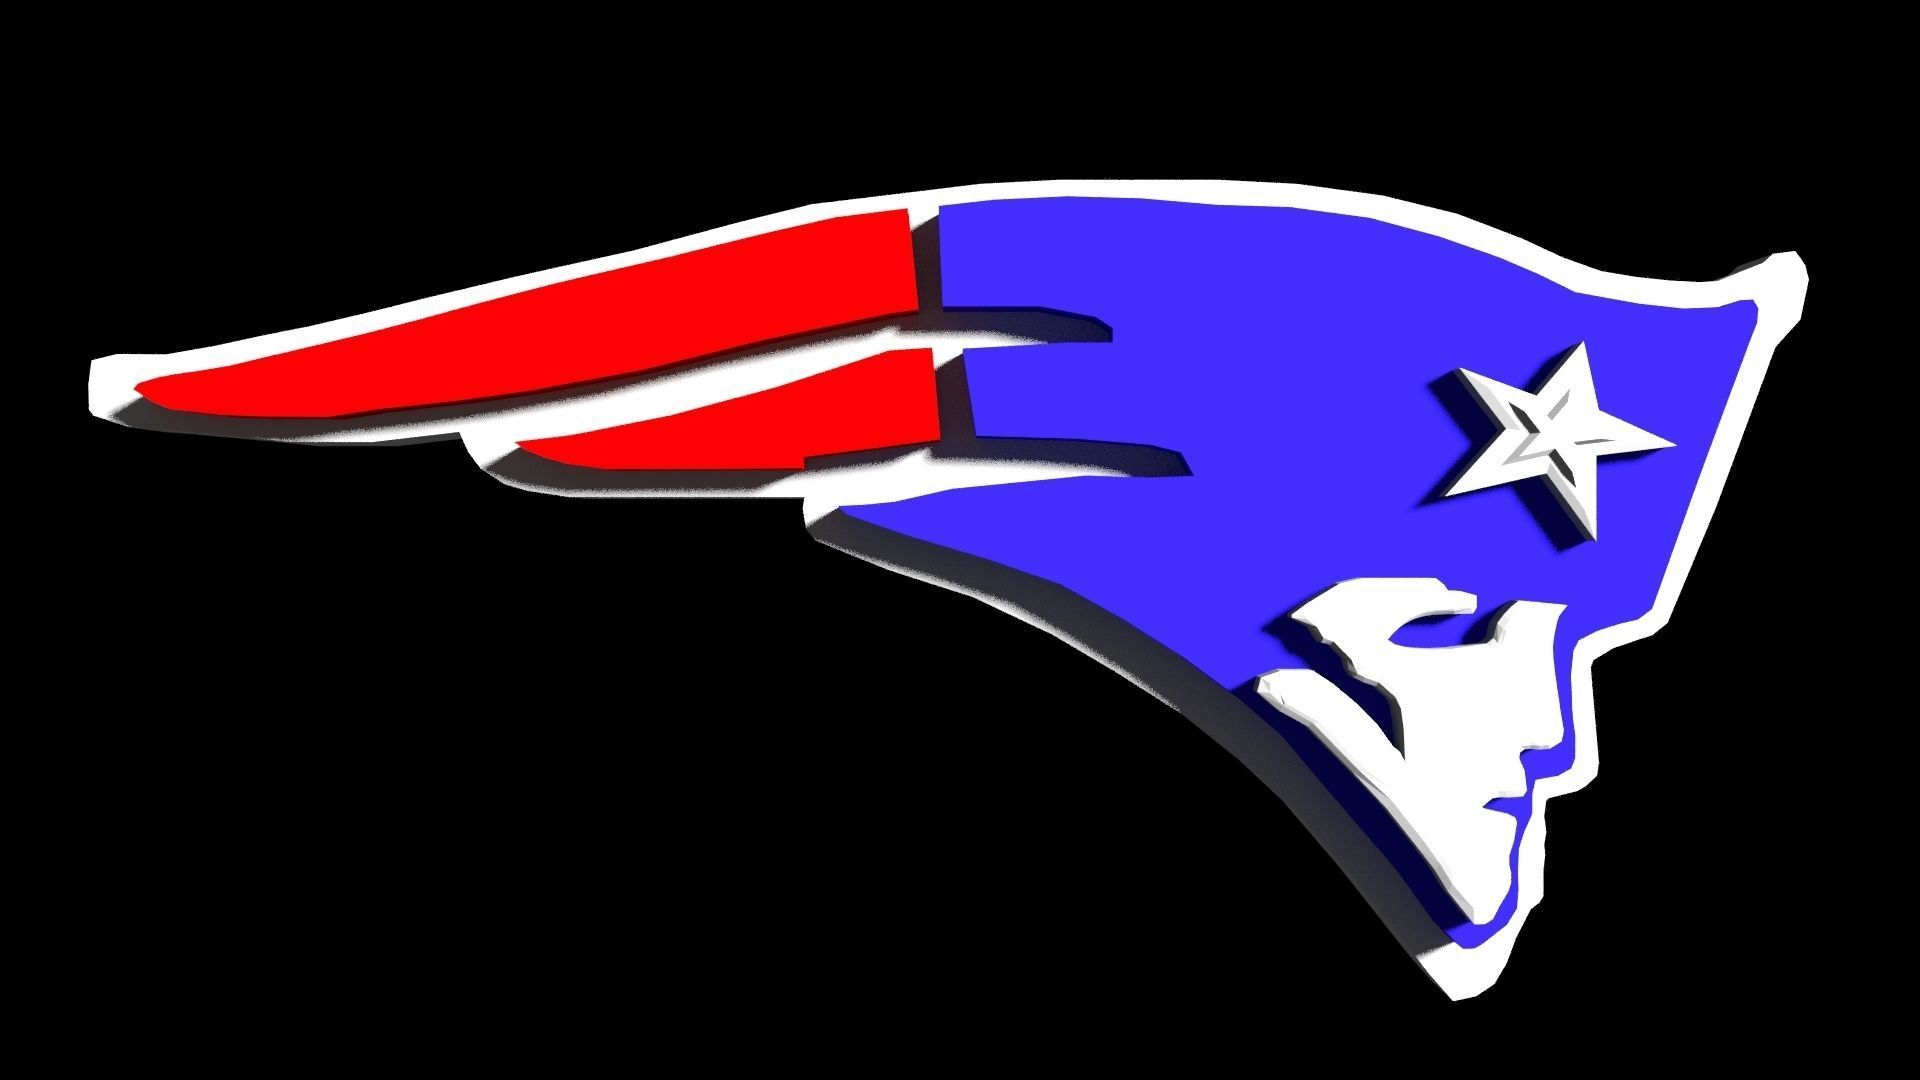 New England Patriots NFL team logo.